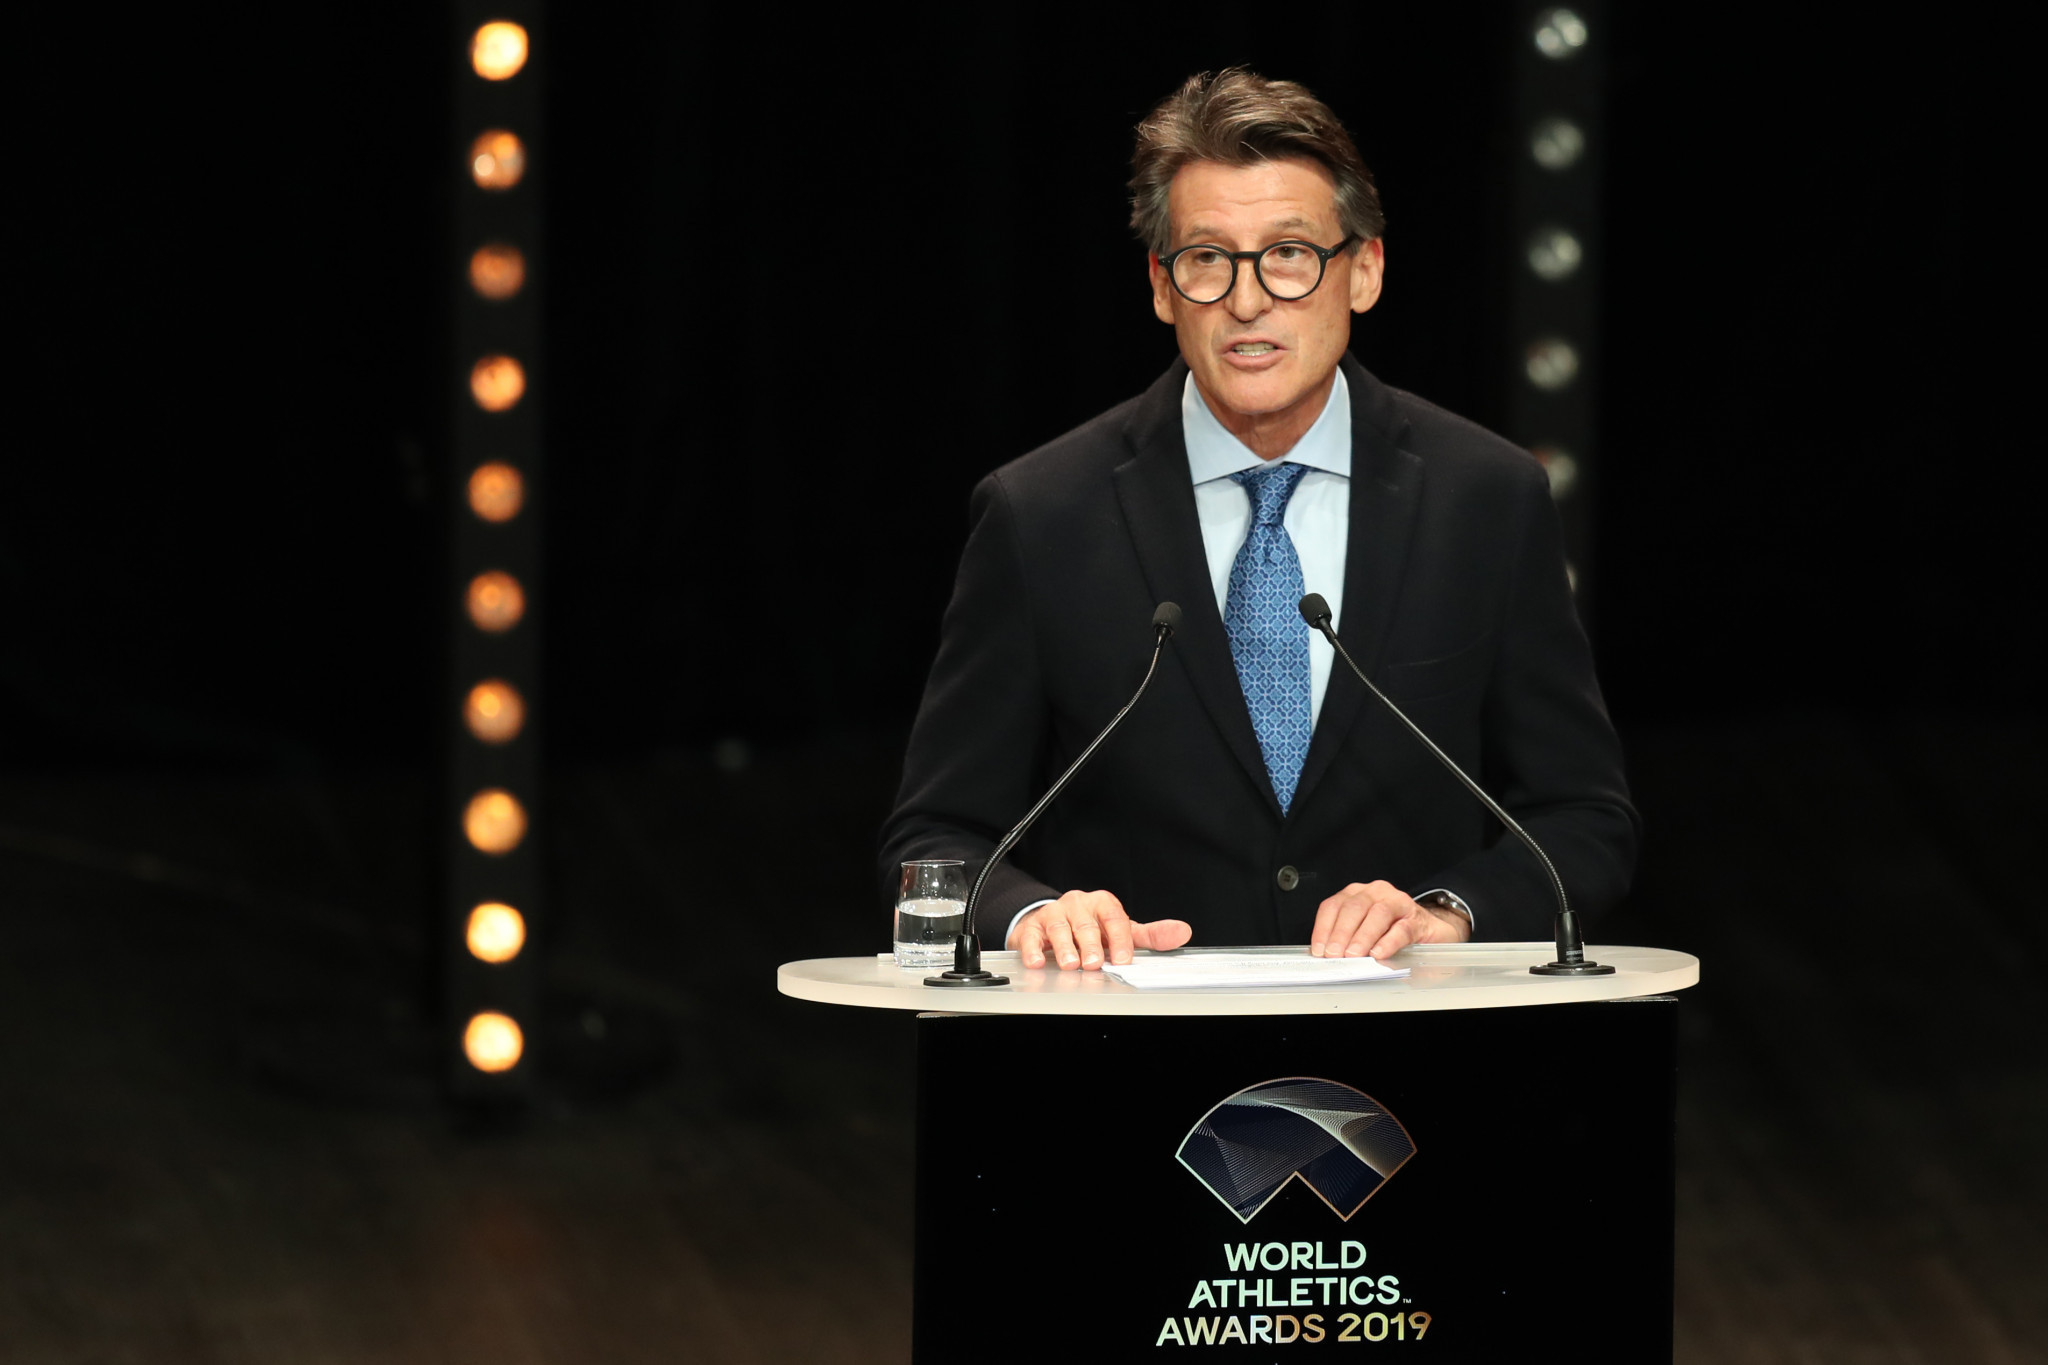 Sebastian Coe has the 2020 season still produced many highlights, despite the pandemic ©Getty Images